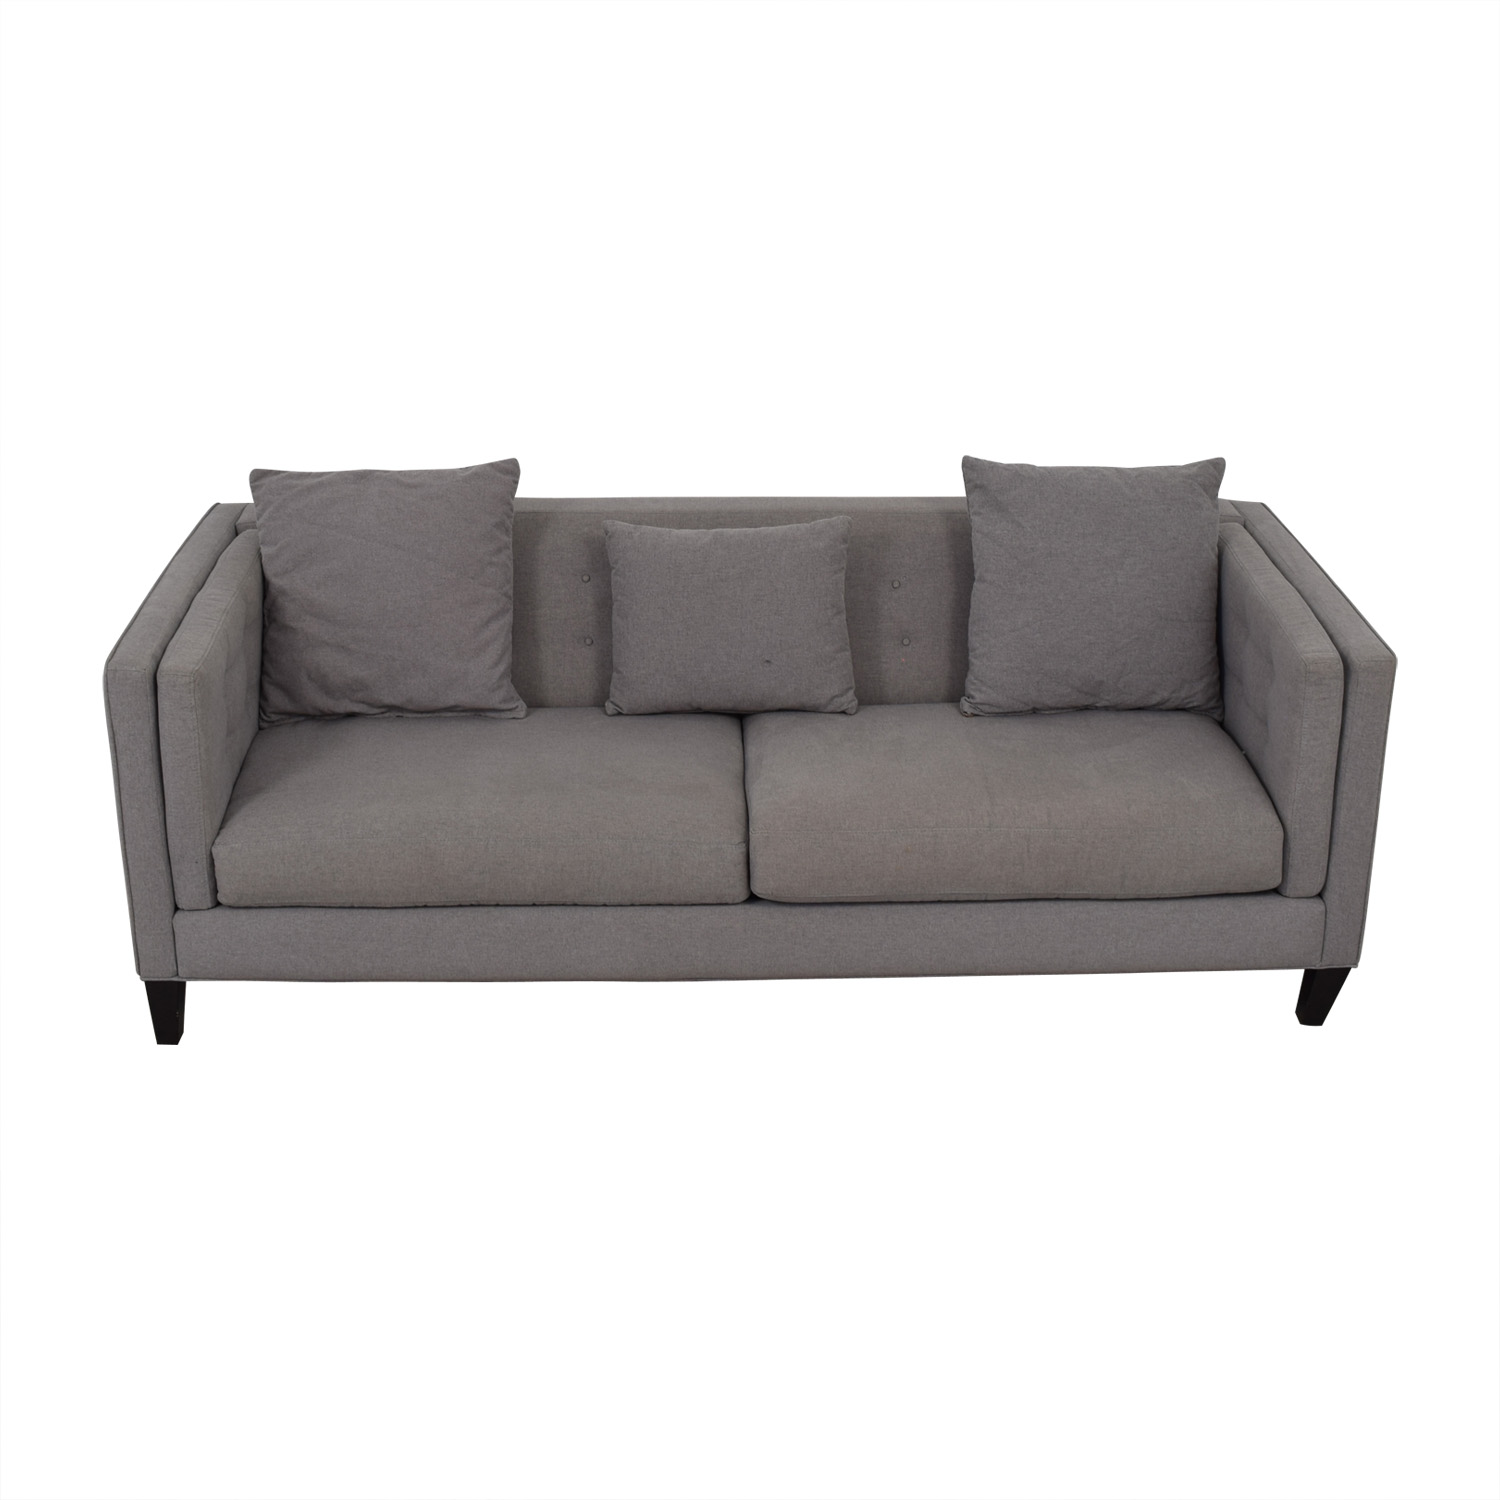 Jonathan Lewis Furniture >> 78 Off Jonathan Louis Jonathan Lewis Grey Two Cushion Couch Sofas